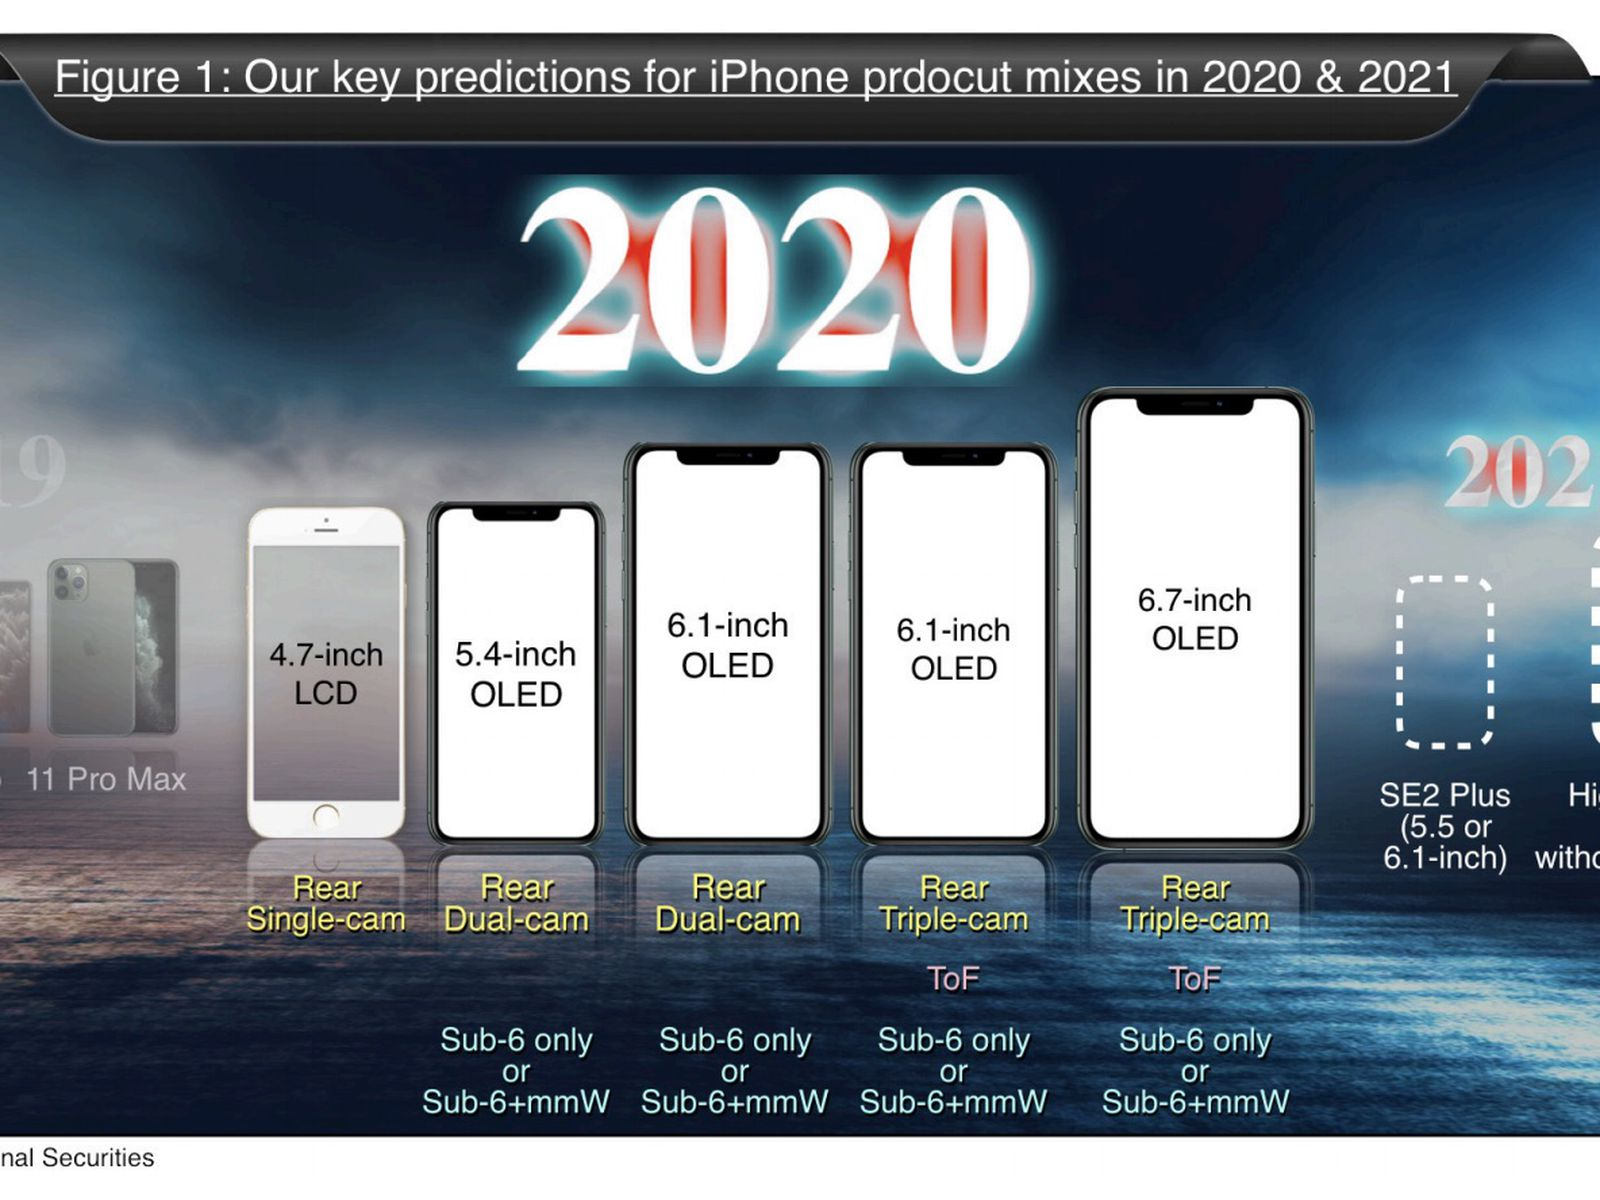 Kuo Apple To Launch Five Iphones In 2020 Including 5 4 Inch Two 6 1 Inch And 6 7 Inch Models With 5g Macrumors